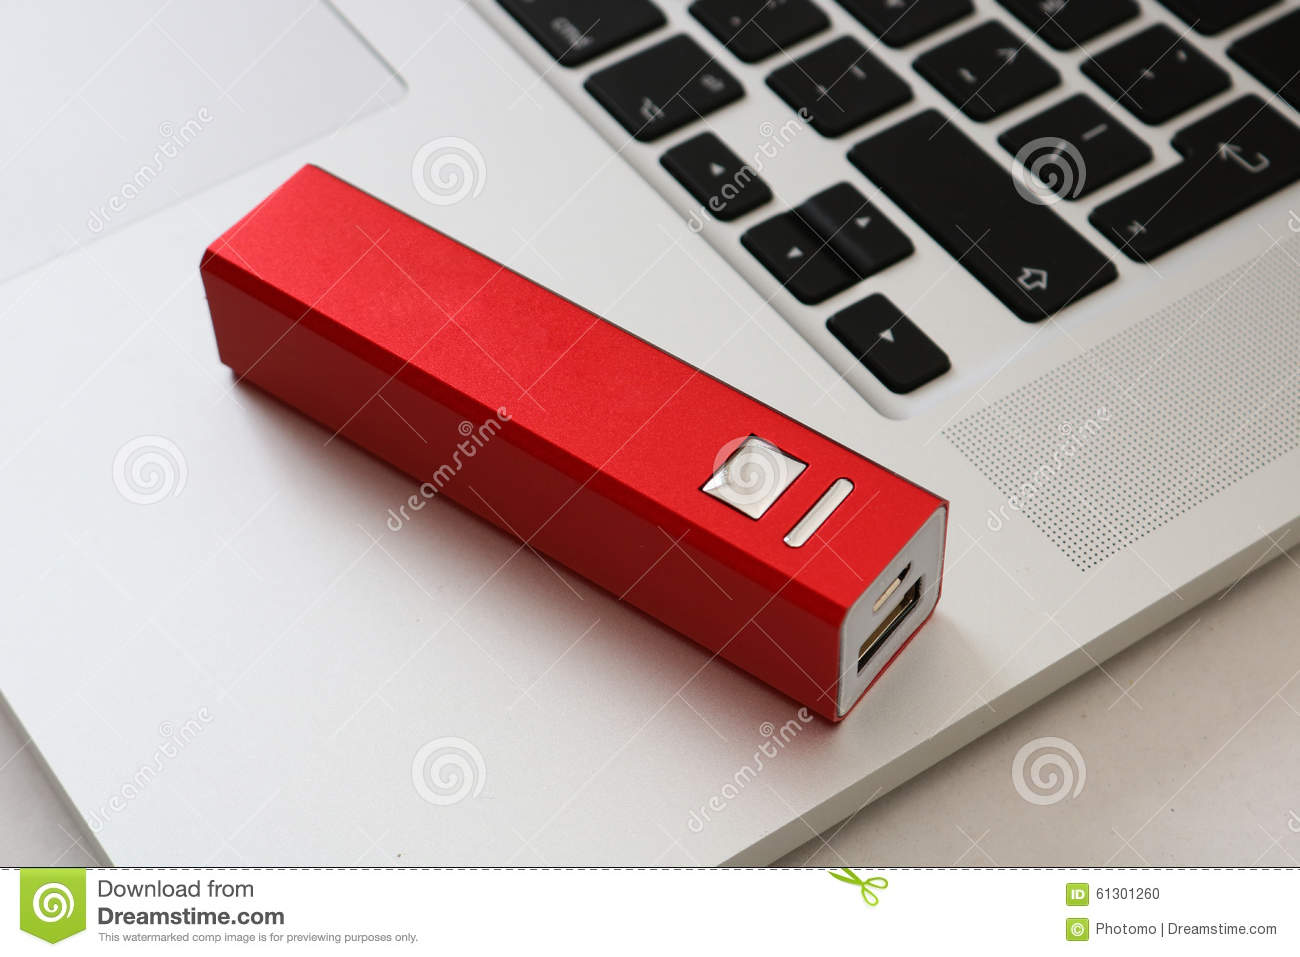 USB Powerbank and a computer